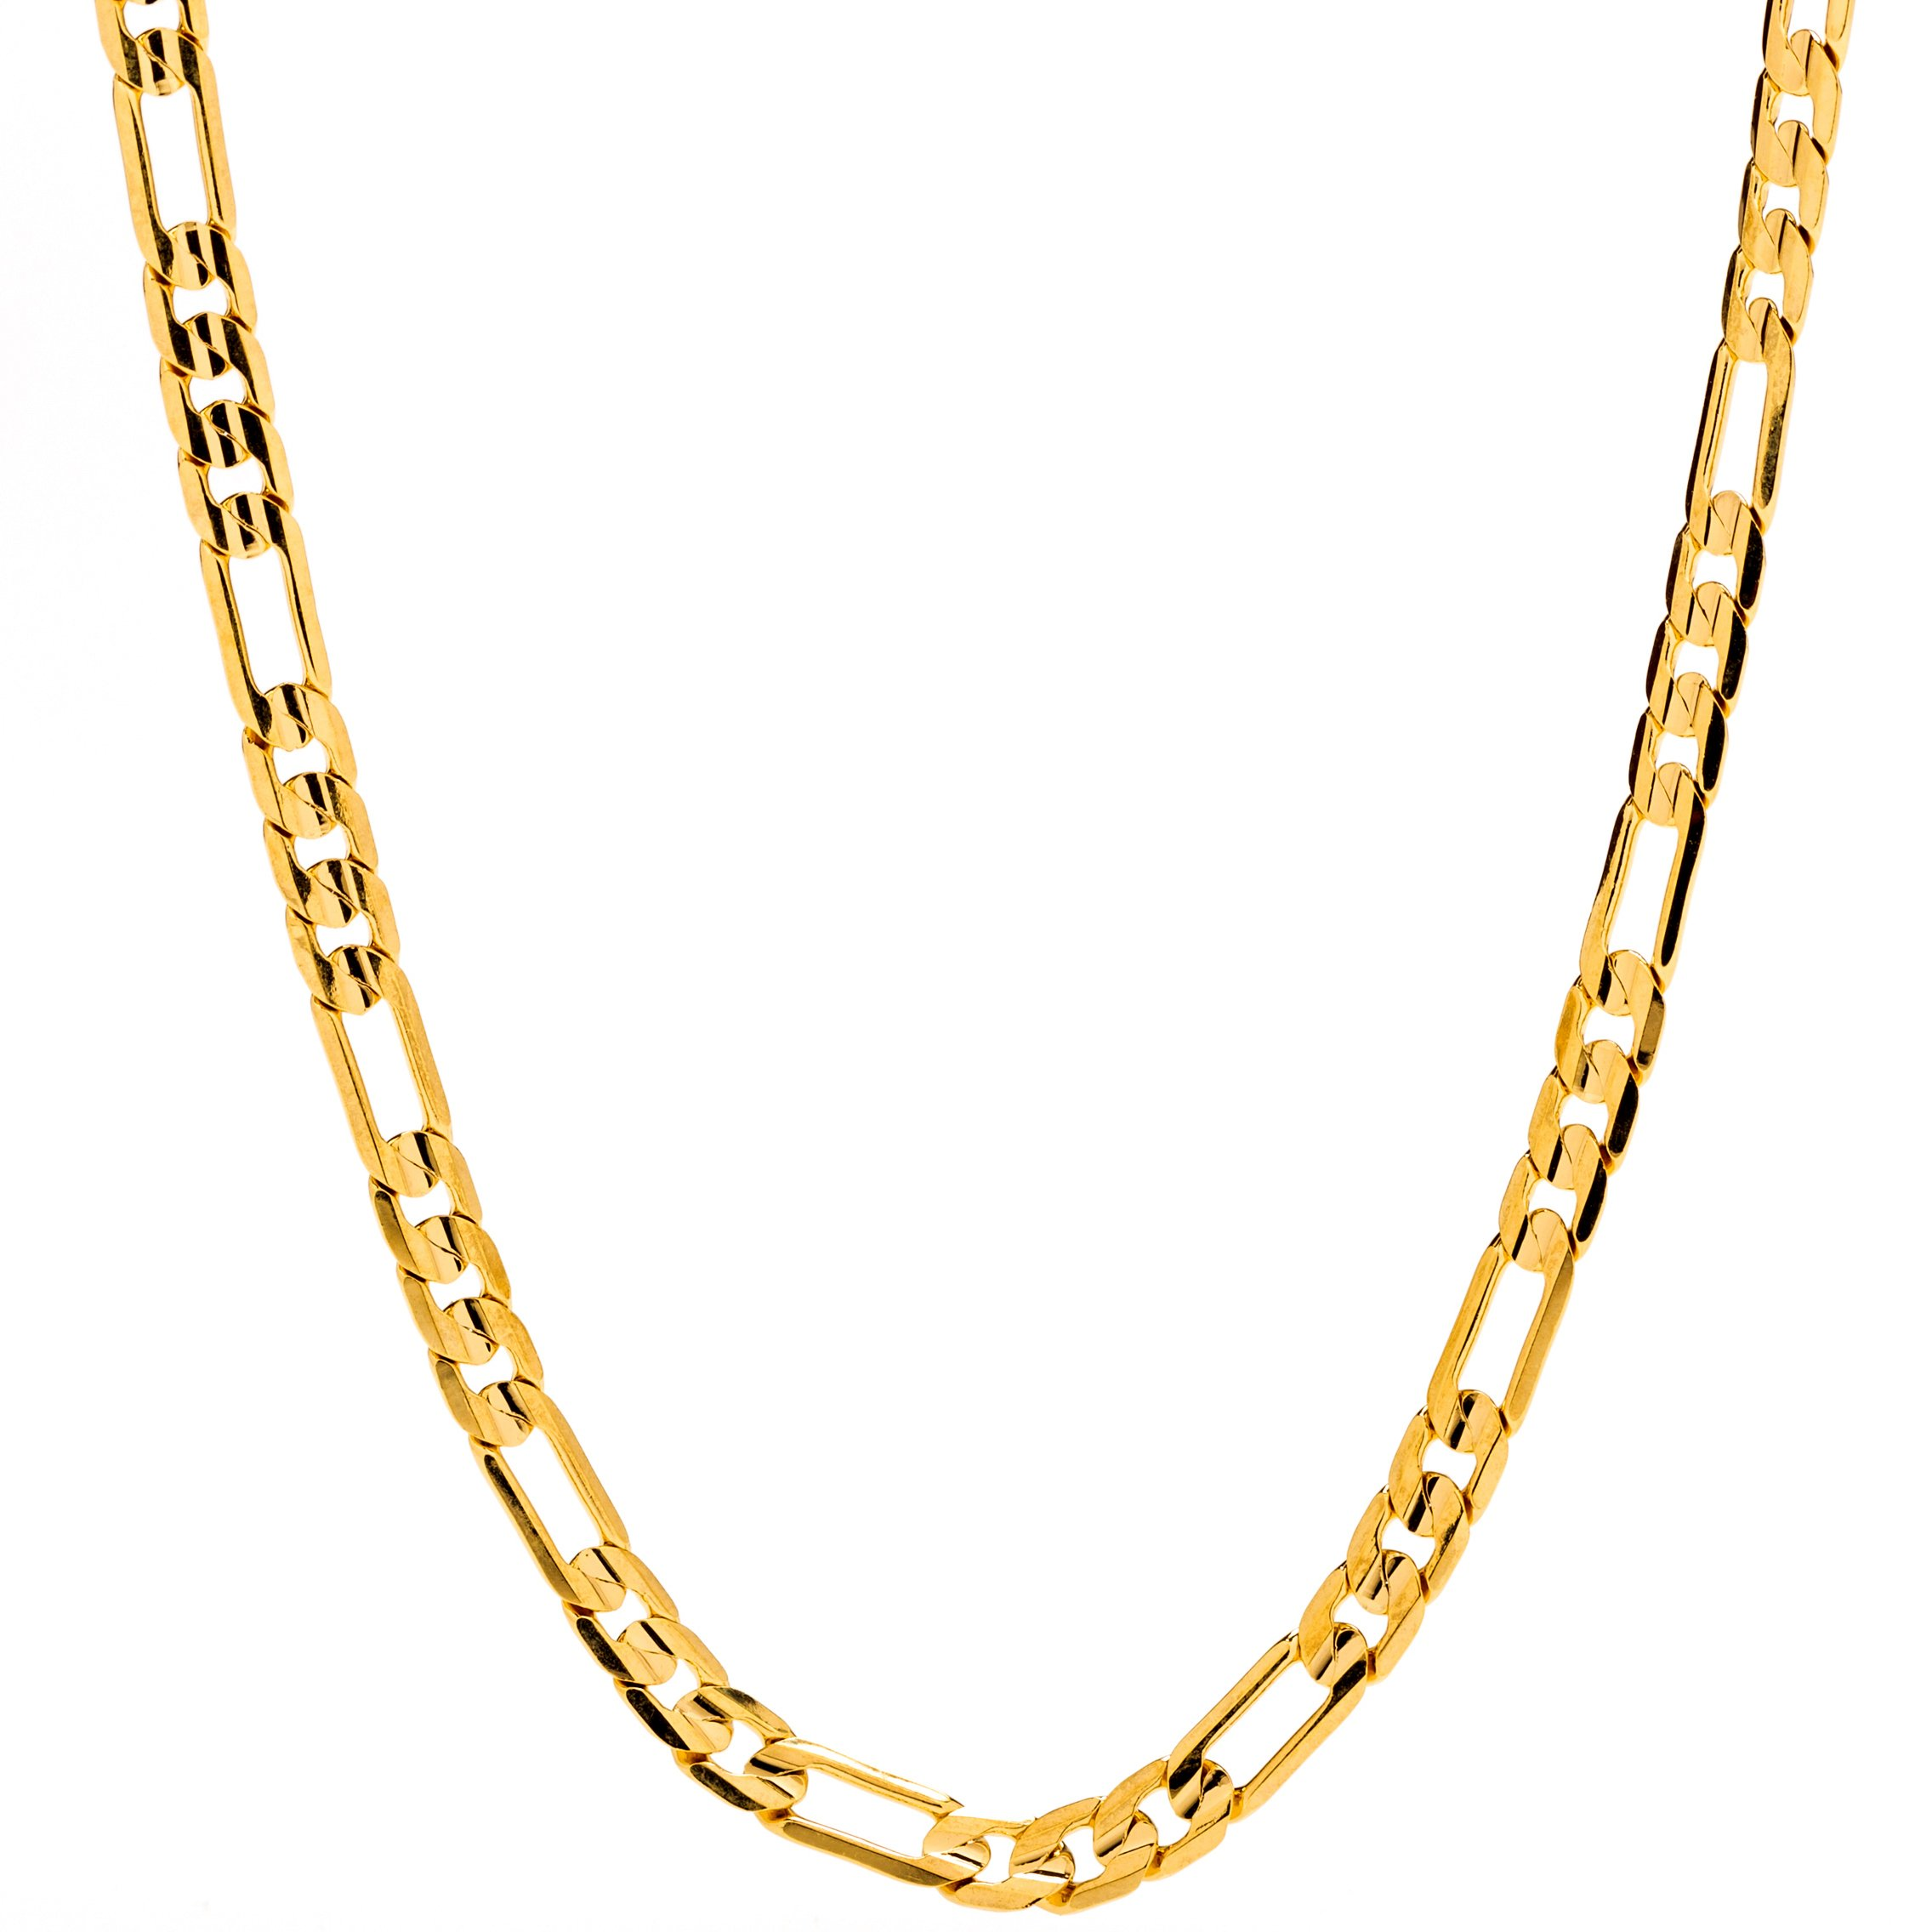 Lifetime Jewelry Figaro Chain 4MM Necklace, 24K Gold Over Semi-Precious Metals, GUARANTEED FOR LIFE, 24 Inches by Lifetime Jewelry (Image #1)